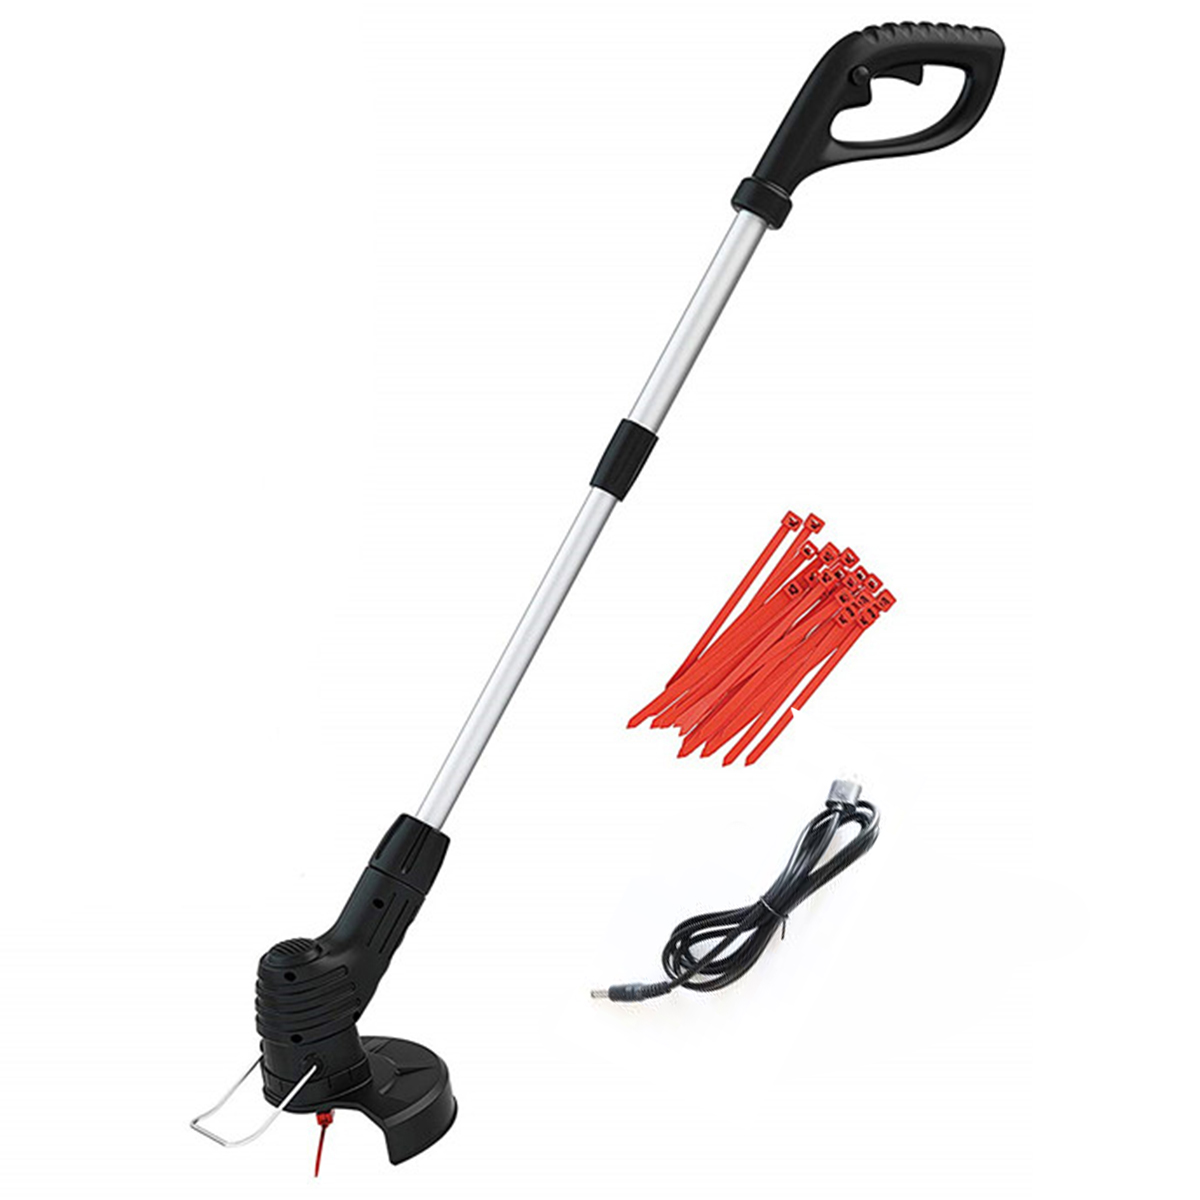 Electric Lawn Mower 2000mAh Li-ion Cordless Grass Trimmer Auto Release String Cutter Pruning Garden Tools